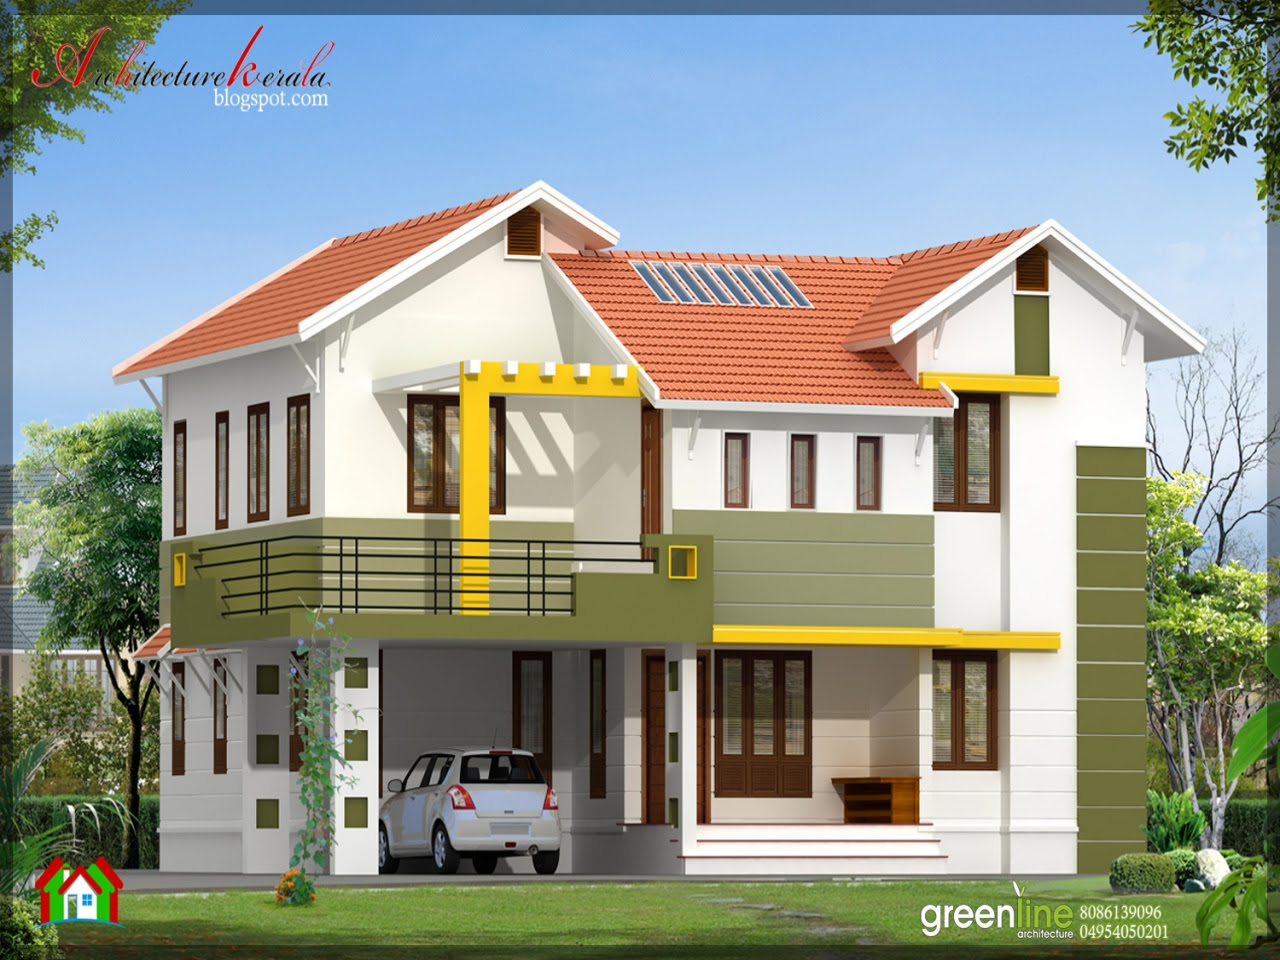 Simple Modern House Designs Simple House Design in India, home designs indian style  Treesranch.com